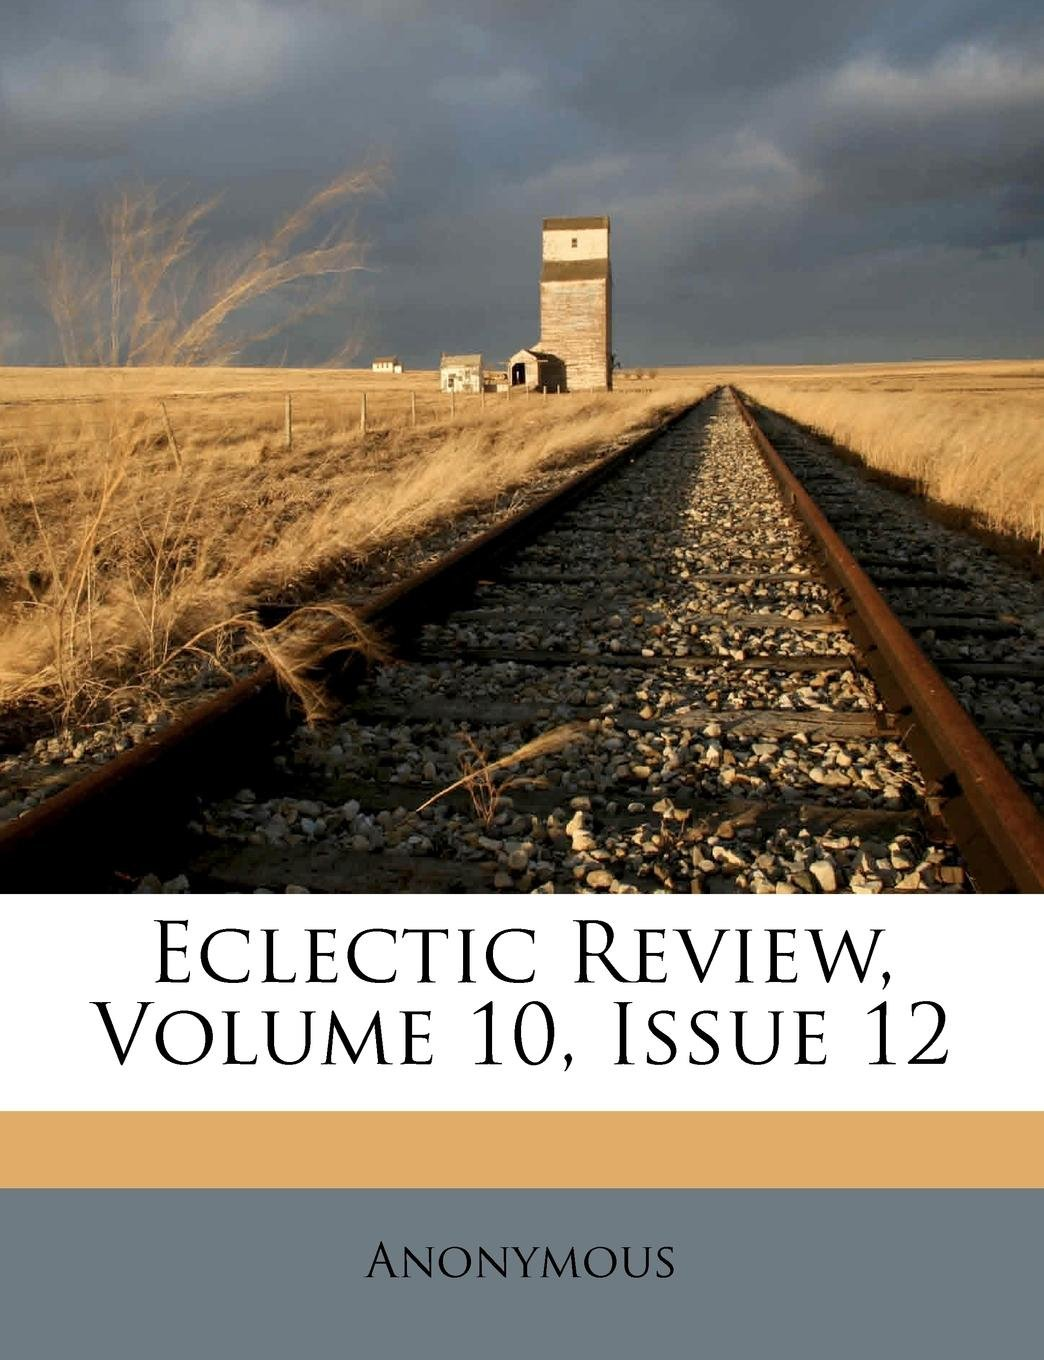 Eclectic Review, Volume 10, Issue 12 PDF